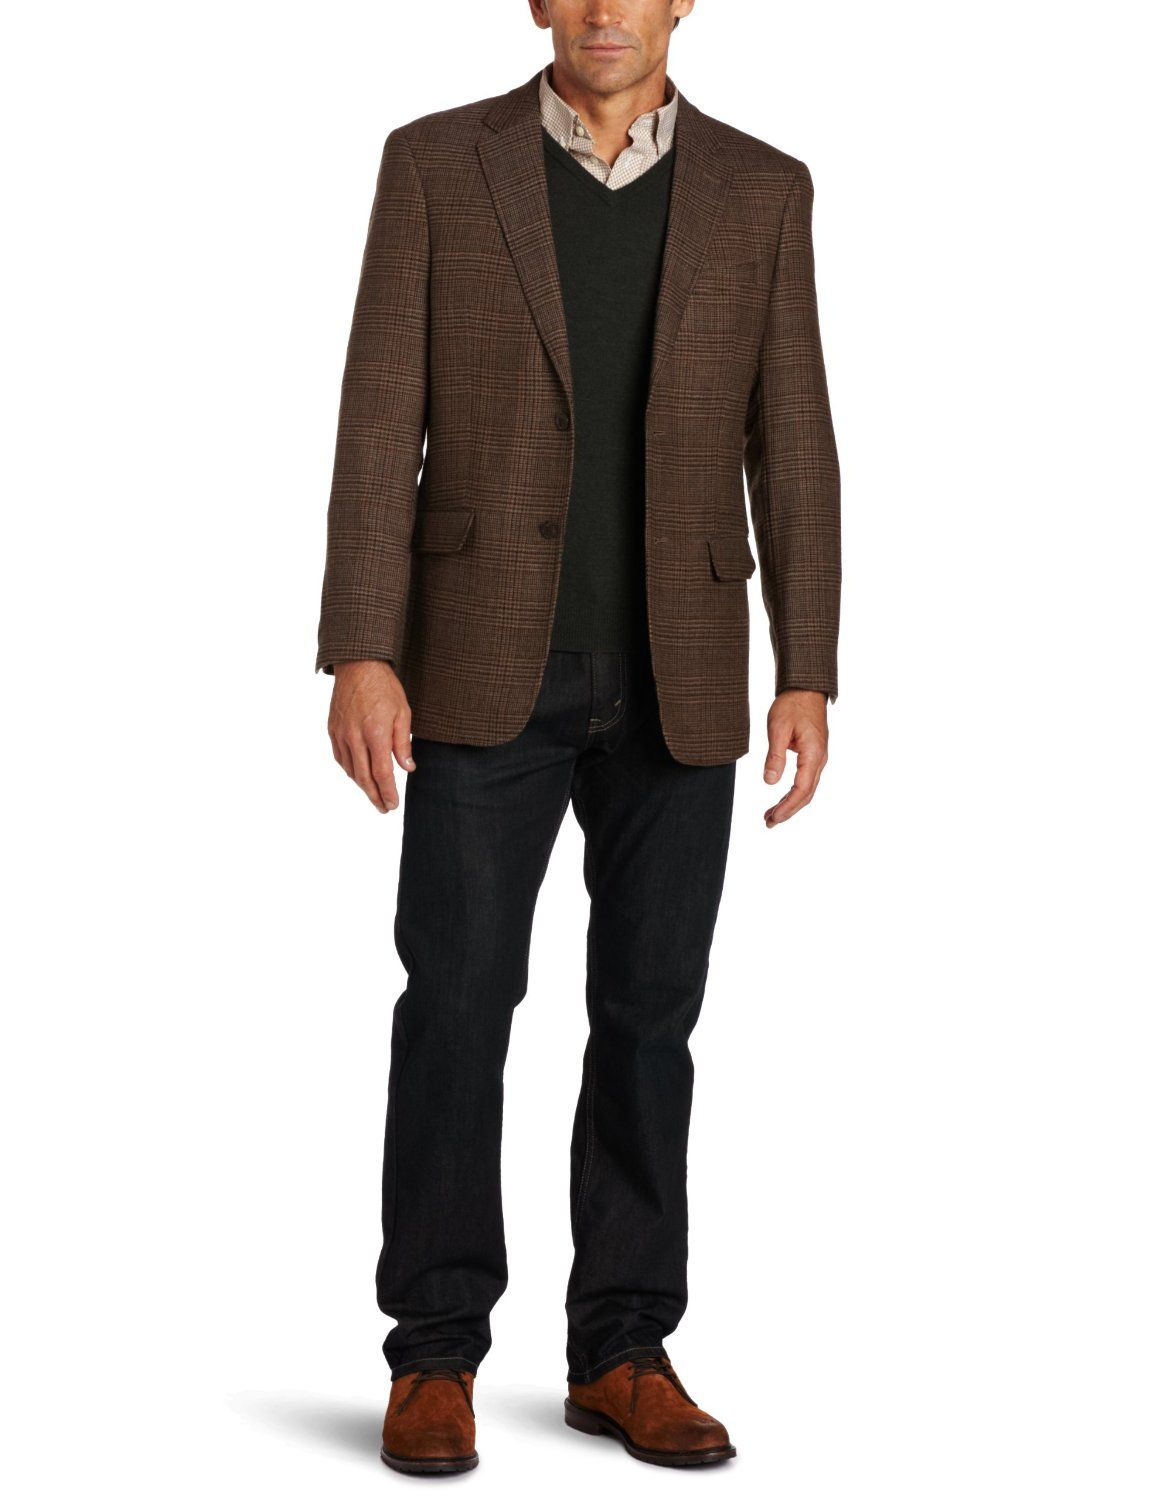 How To Wear A Sports Jacket With Jeans Sports coat